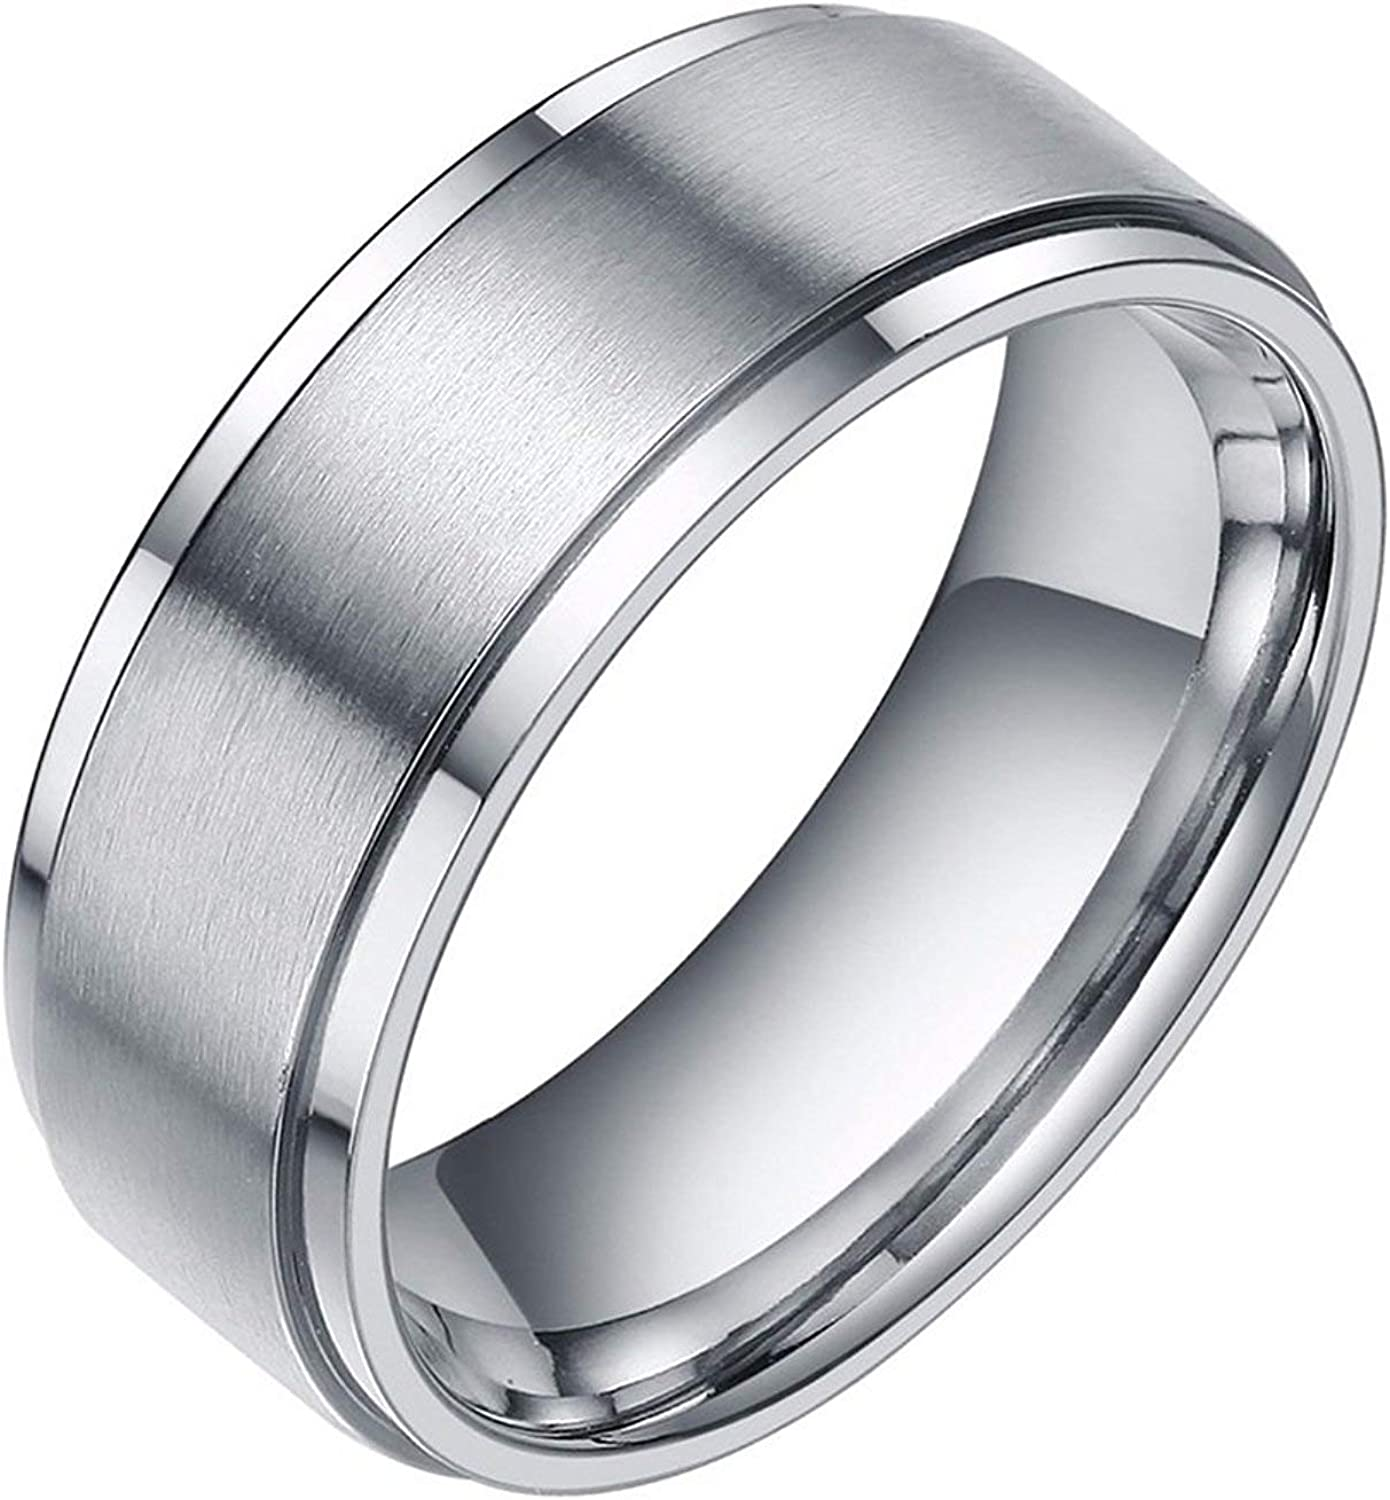 9MM Tungsten Carbide Men's Wedding Band Ring in Comfort Fit and Matte Finish